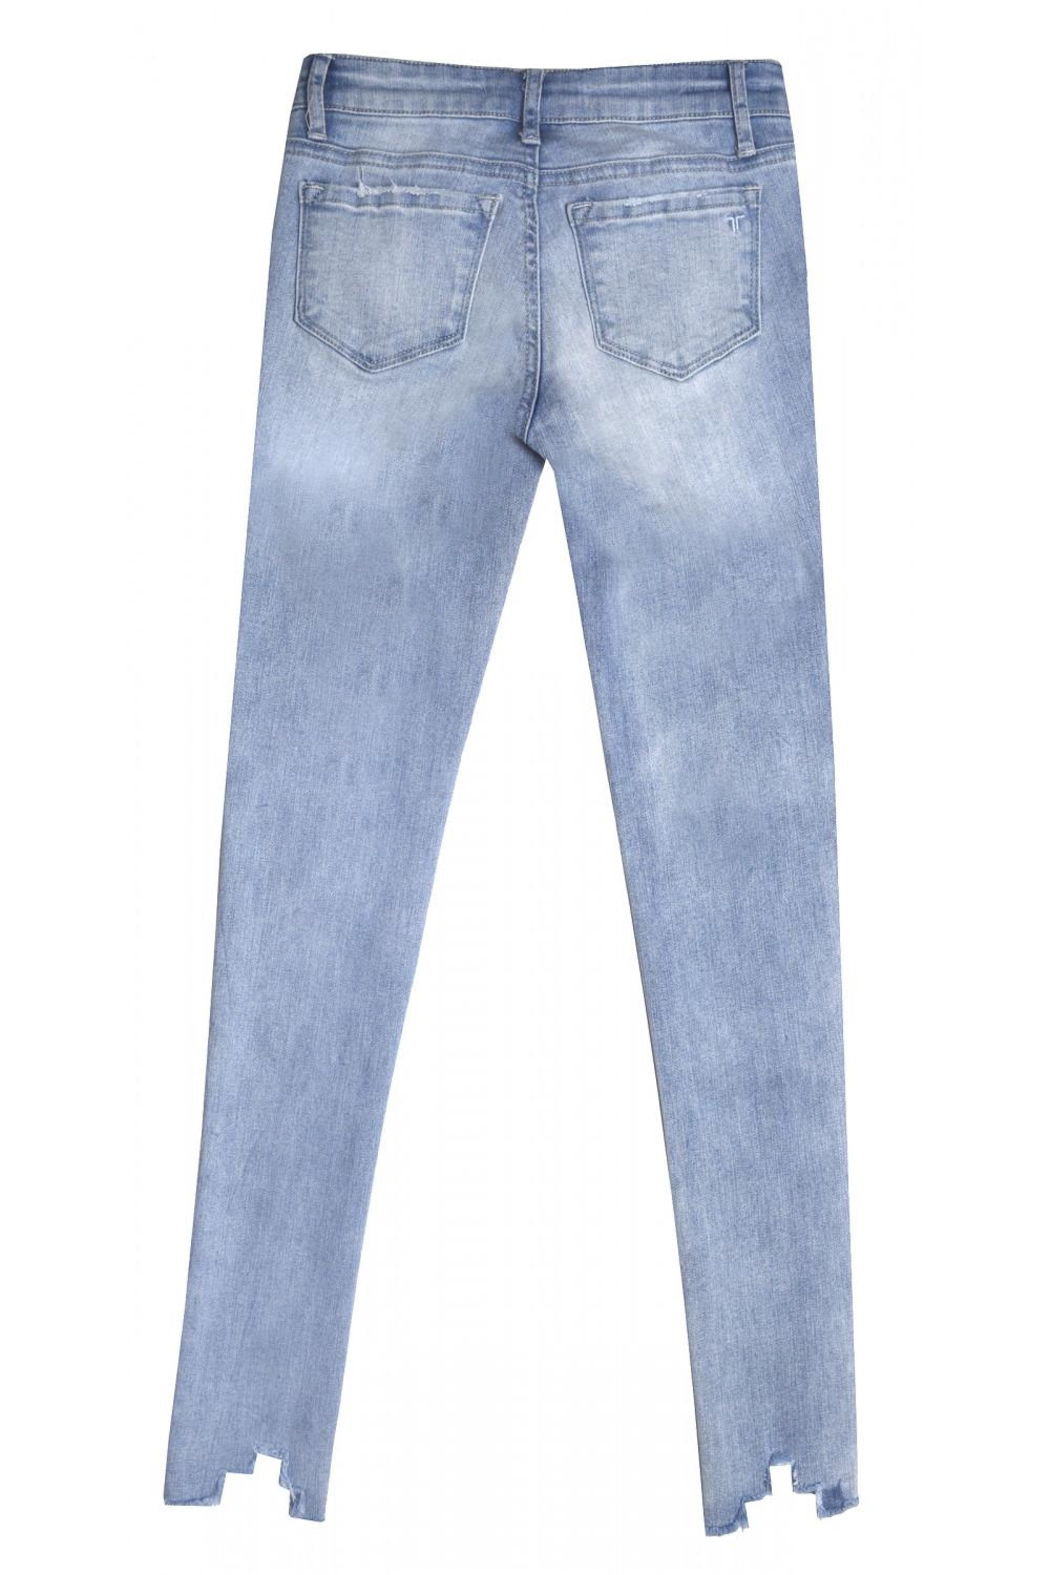 Tractr Blu Pastel Embroidered Jean - Front Full Image